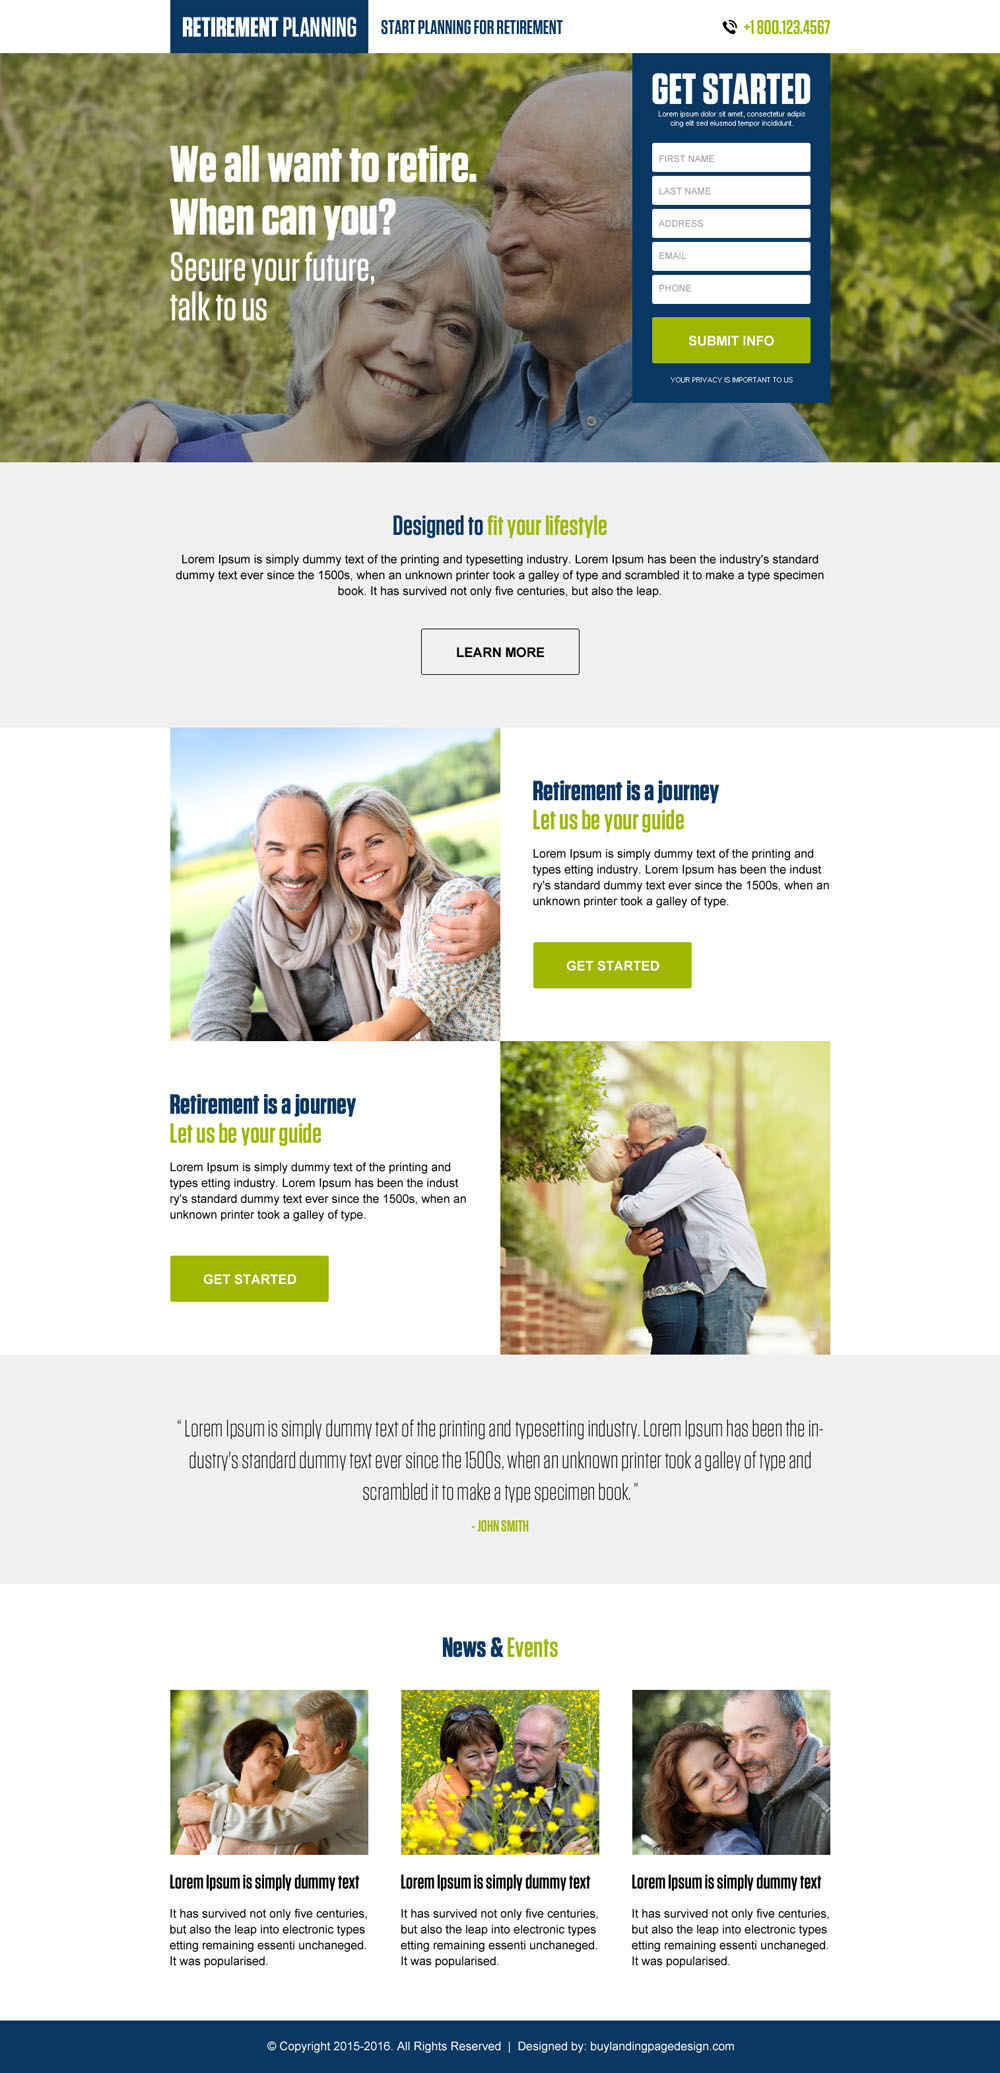 retirement-planning-lead-capture-converting-landing-page-design-template-001